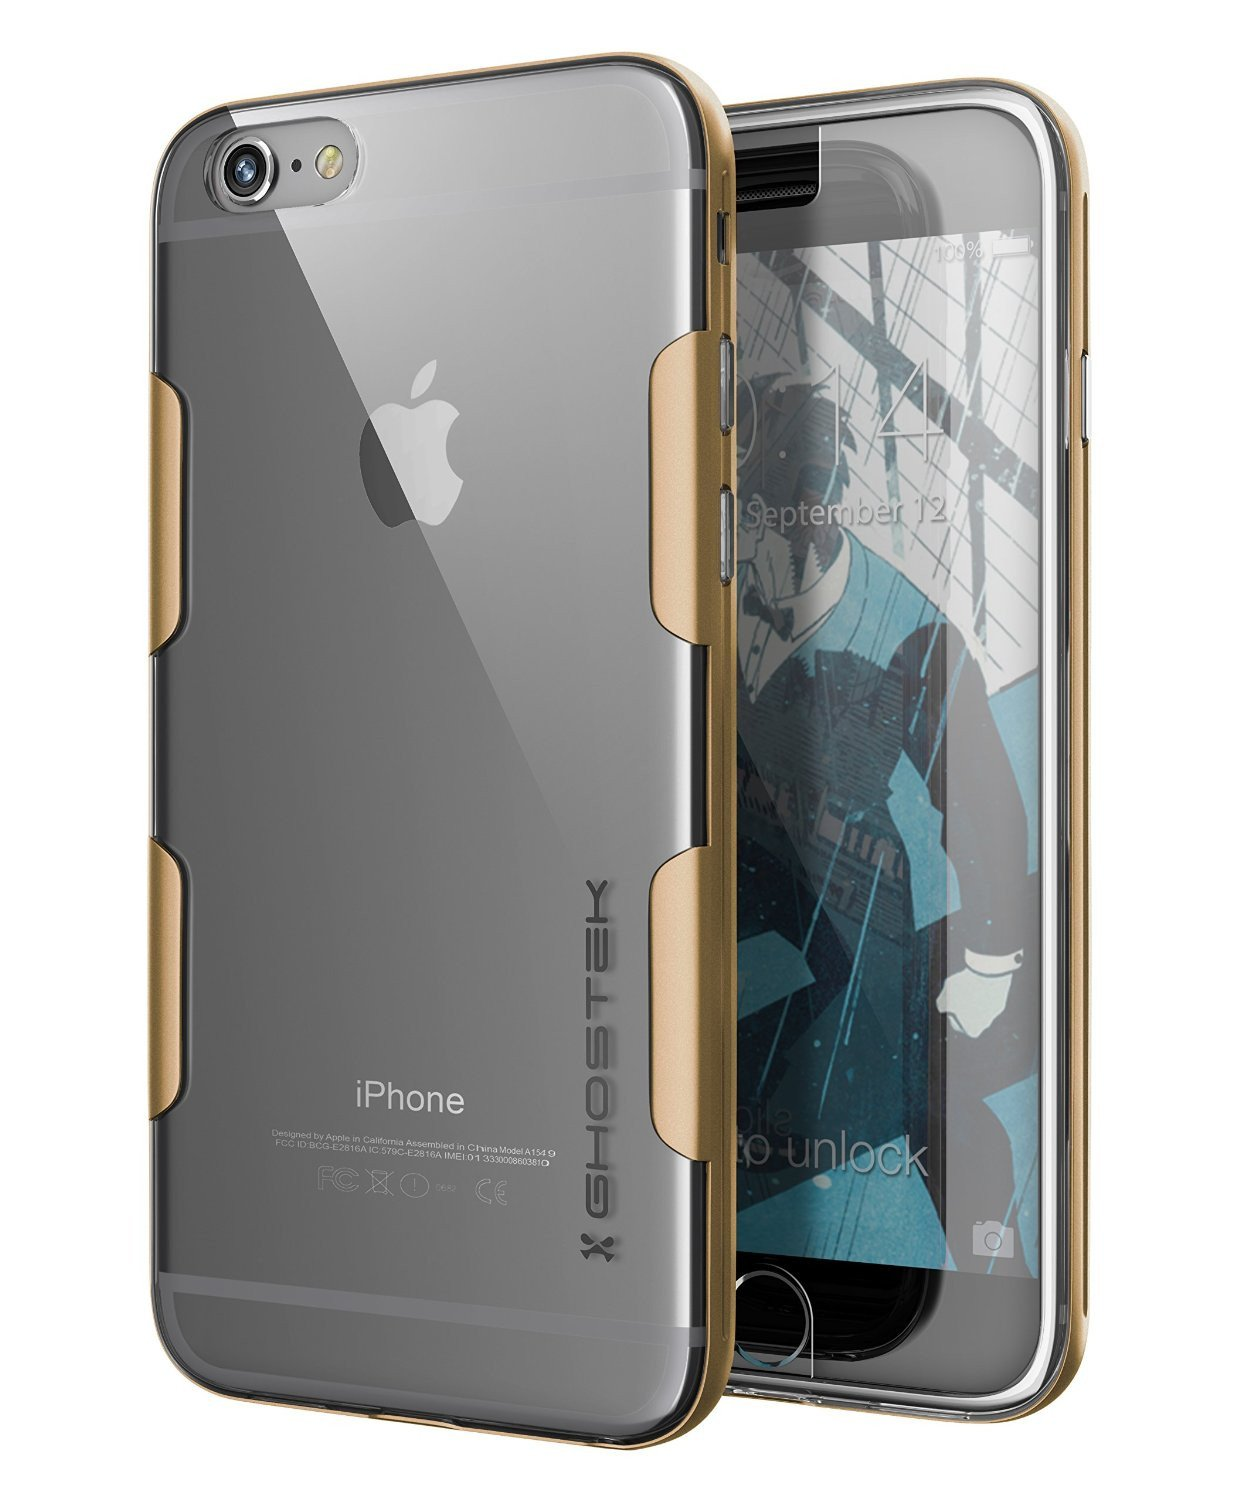 iPhone 6s Plus Case Gold Ghostek Cloak, Slim Protective Armor w/ Tempered Glass | Lifetime Warranty